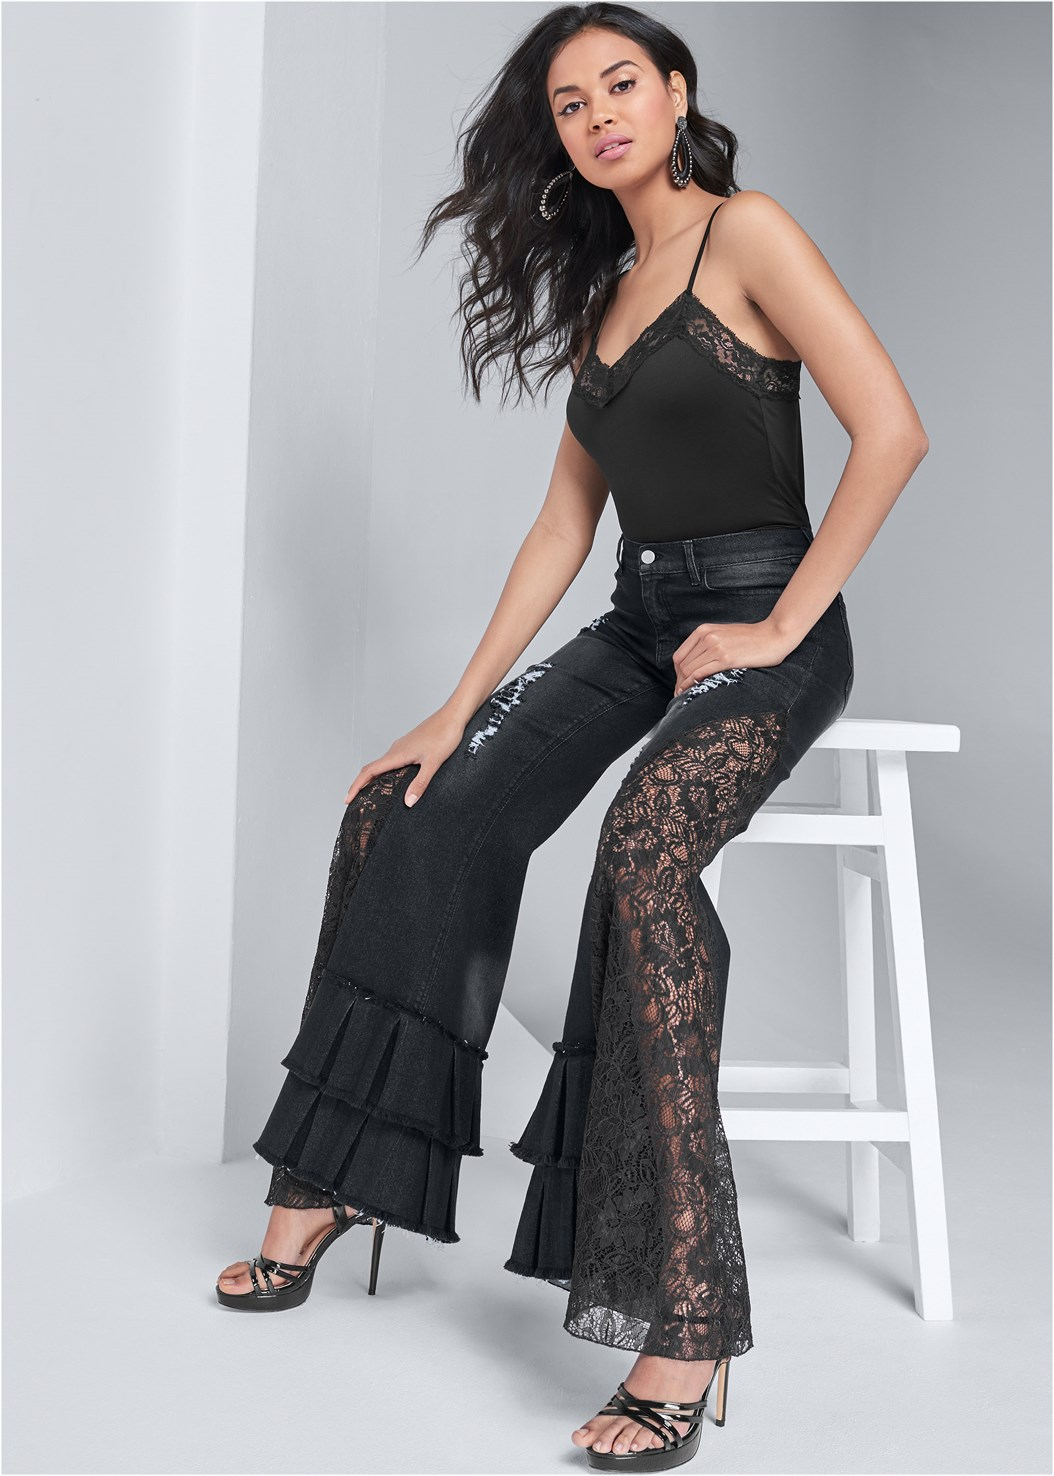 Lace Inset Flare Jeans,Lace Cami,Crisscross Strappy Heel